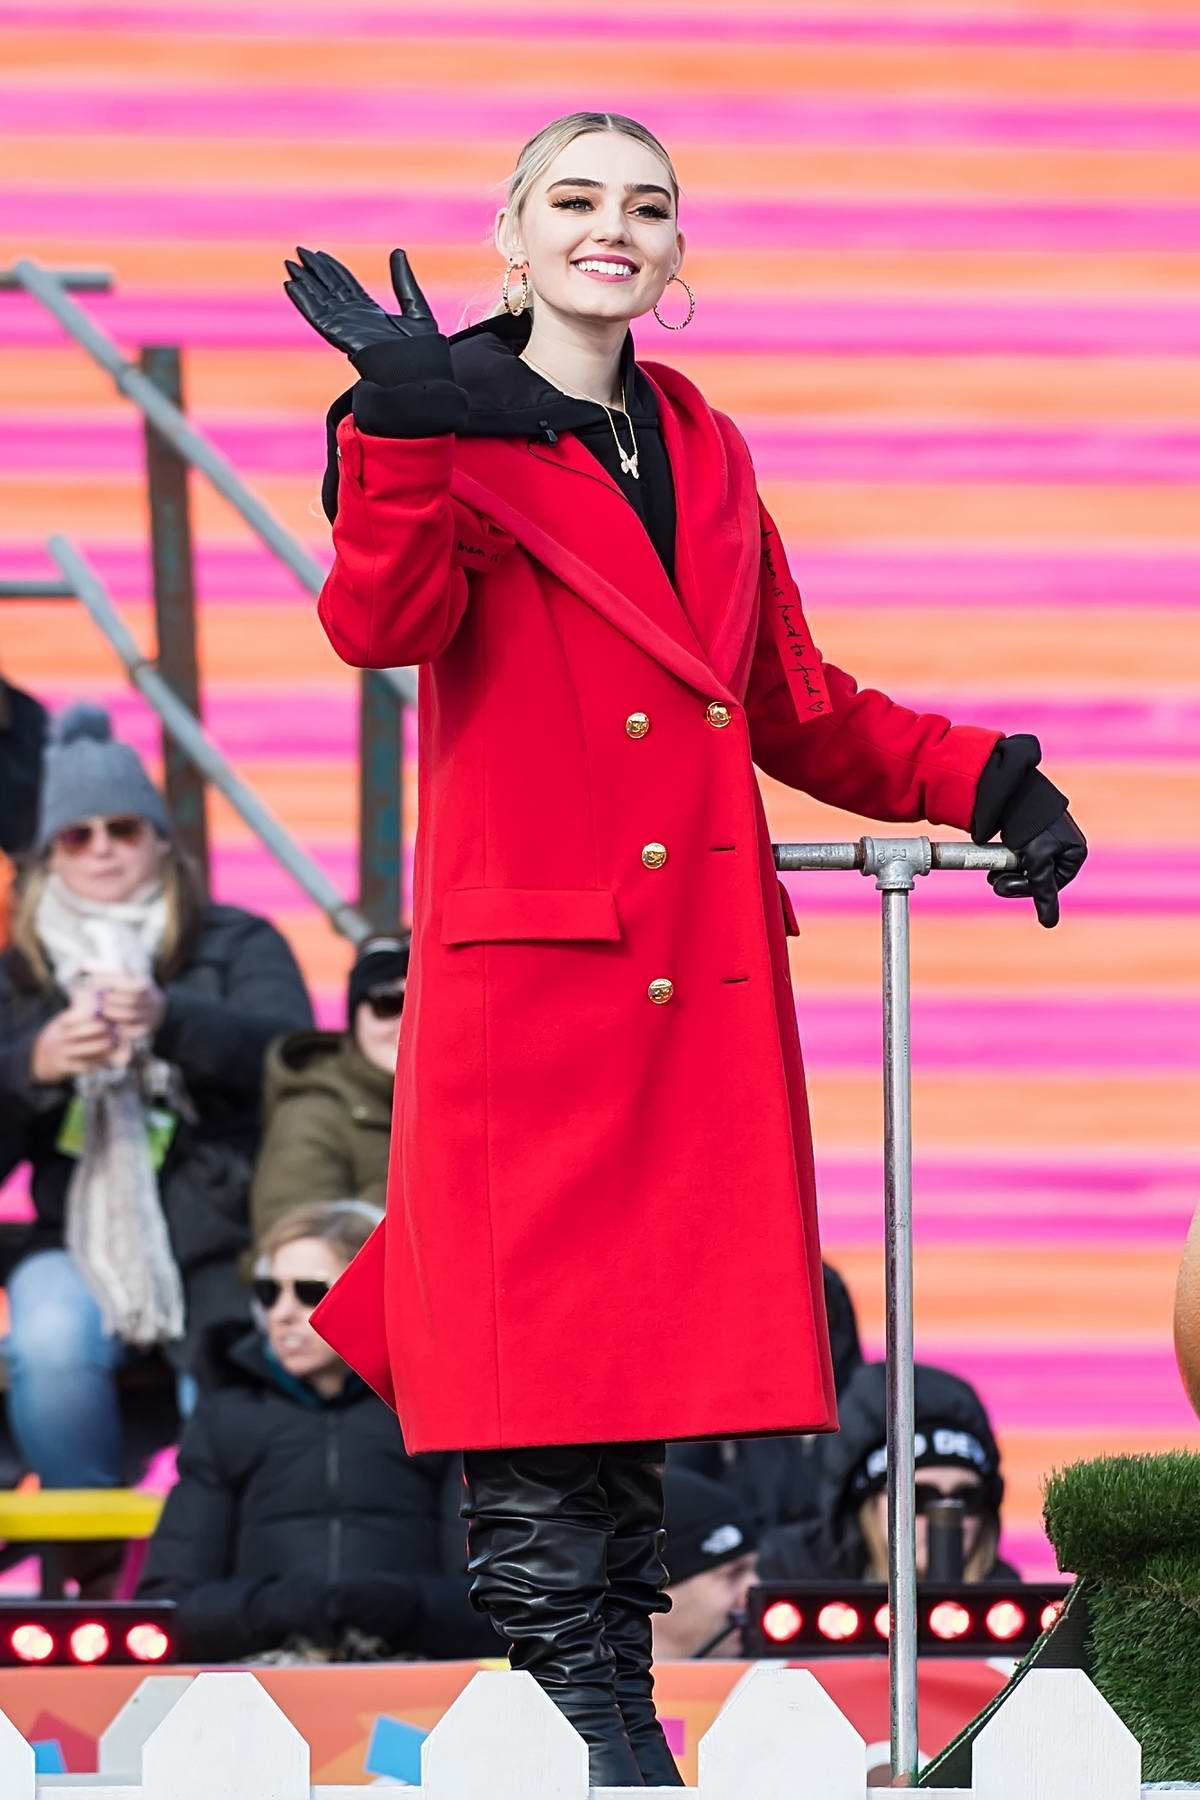 Meg Donnelly attends the 100th 6ABC Dunkin' Thanksgiving Day Parade in Philadelphia, Pennsylvania